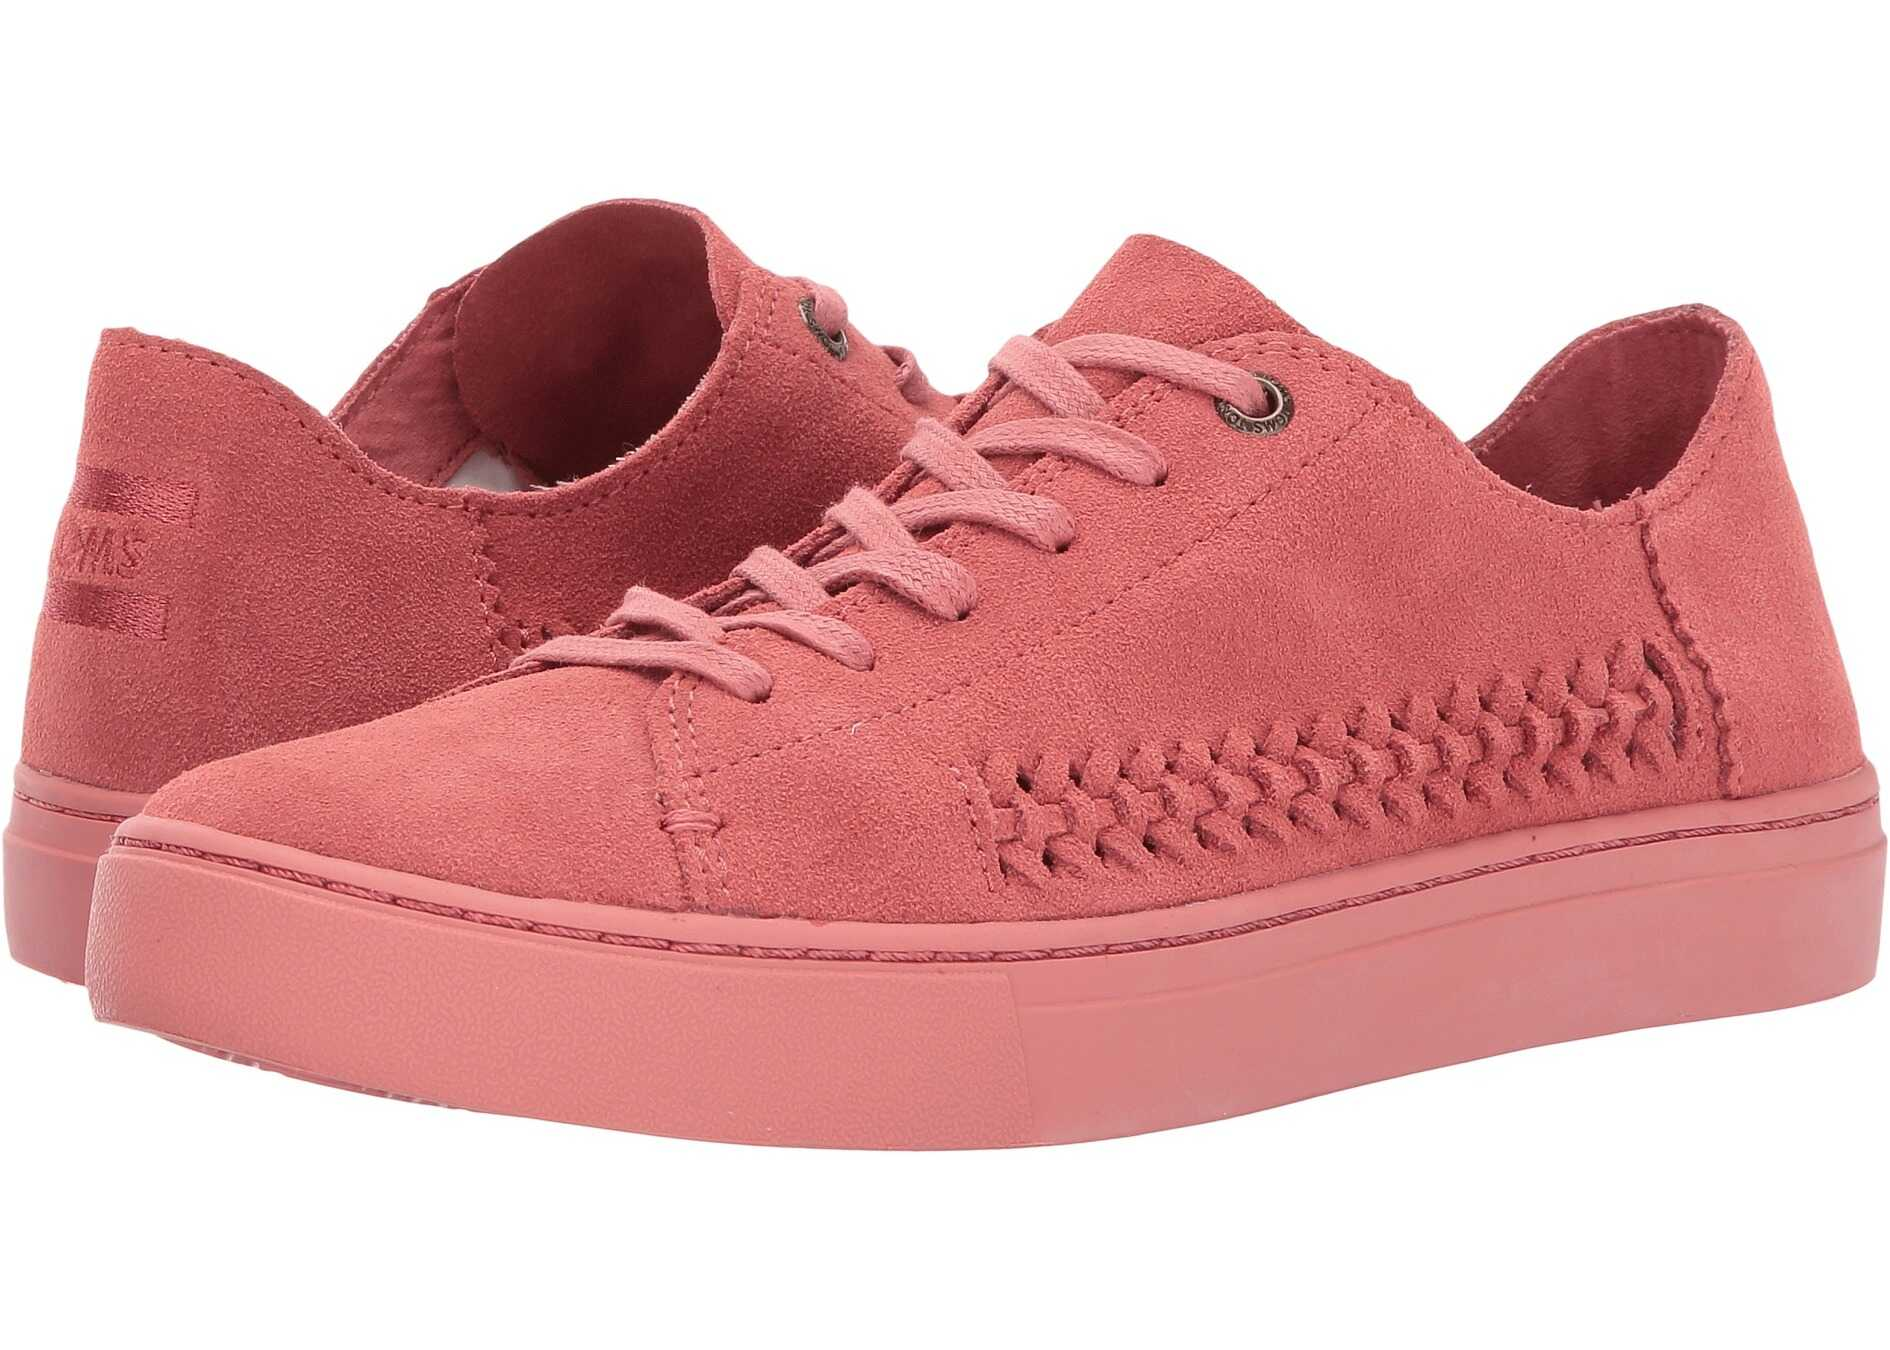 TOMS Lenox Sneaker Faded Rose Monochrome Deconstructed Suede/Woven Panel